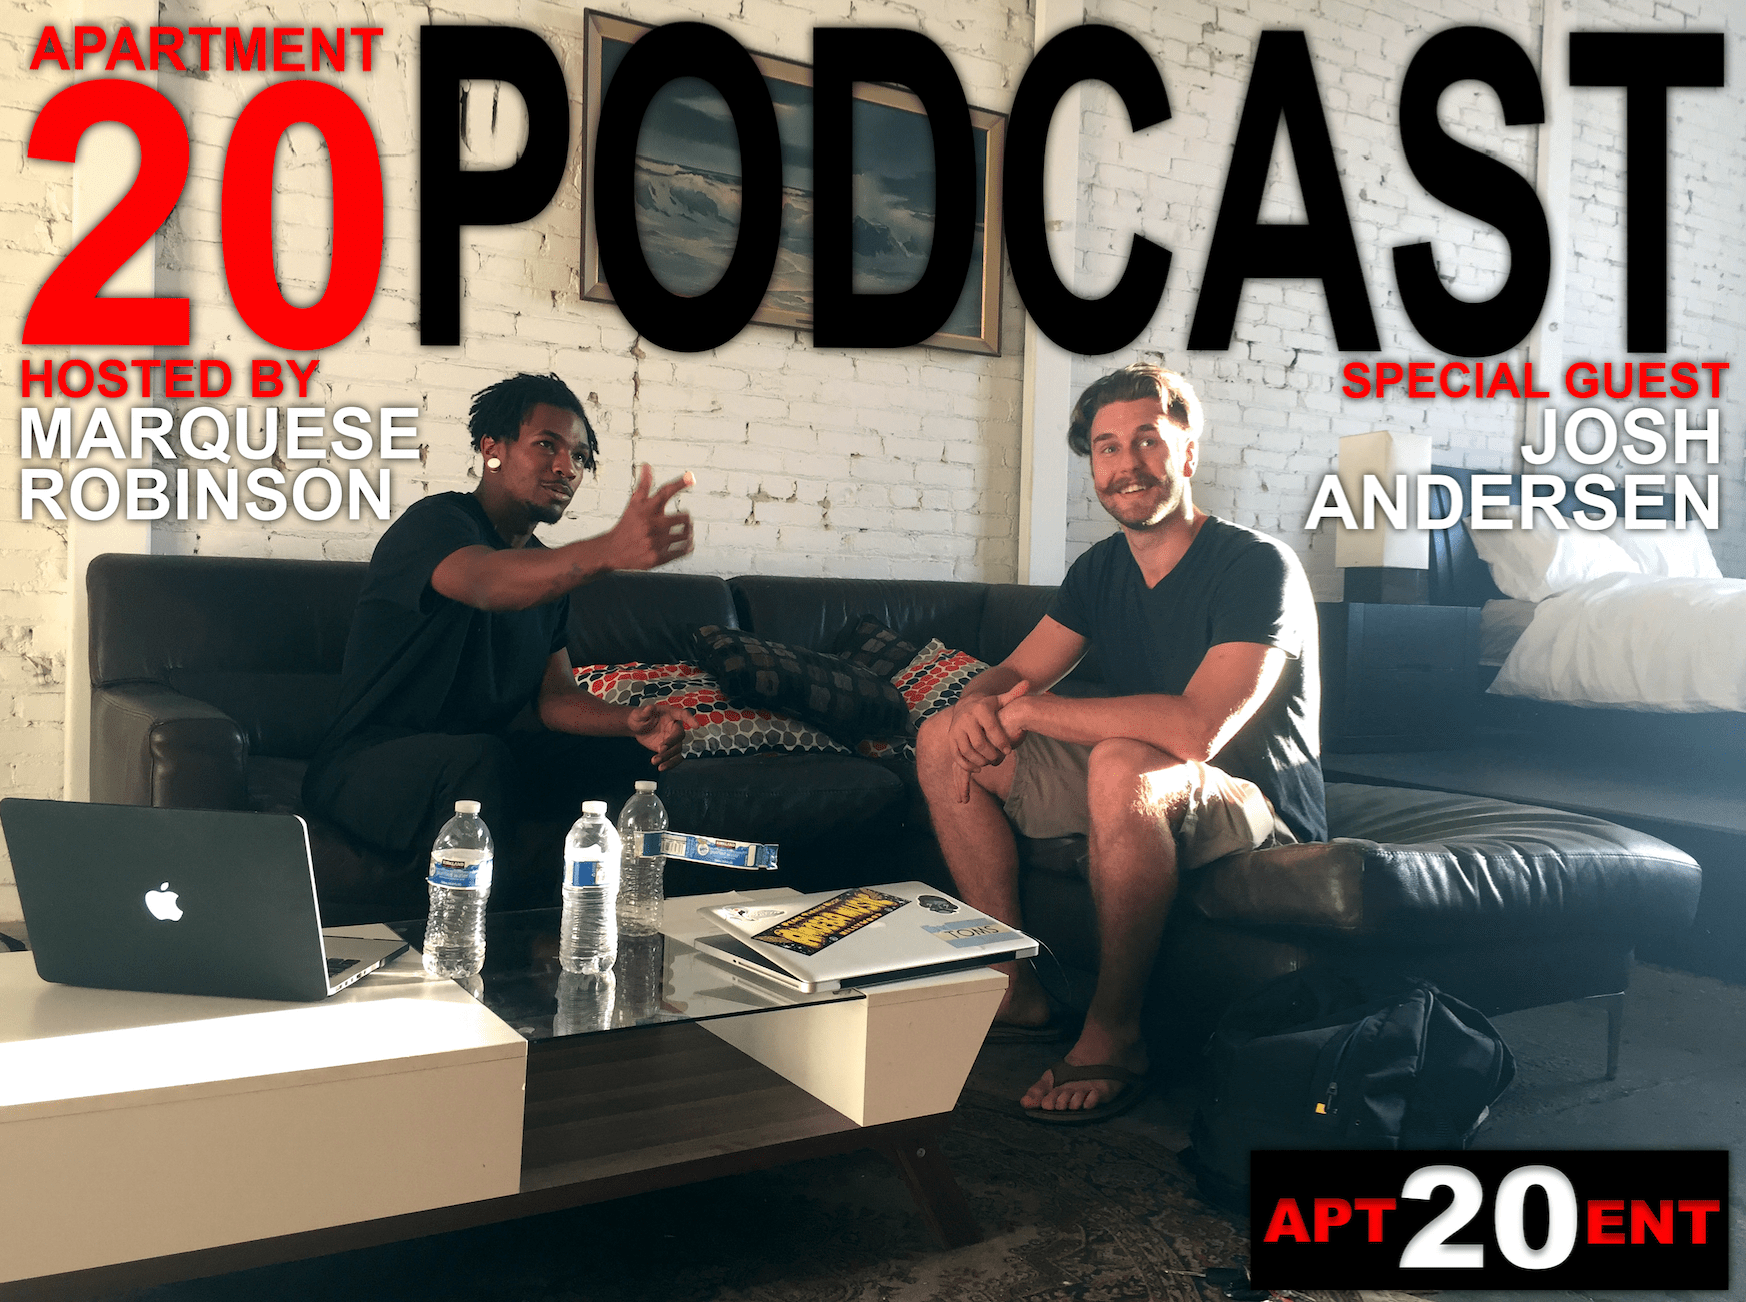 Apartment 20 Podcast: Josh Andersen